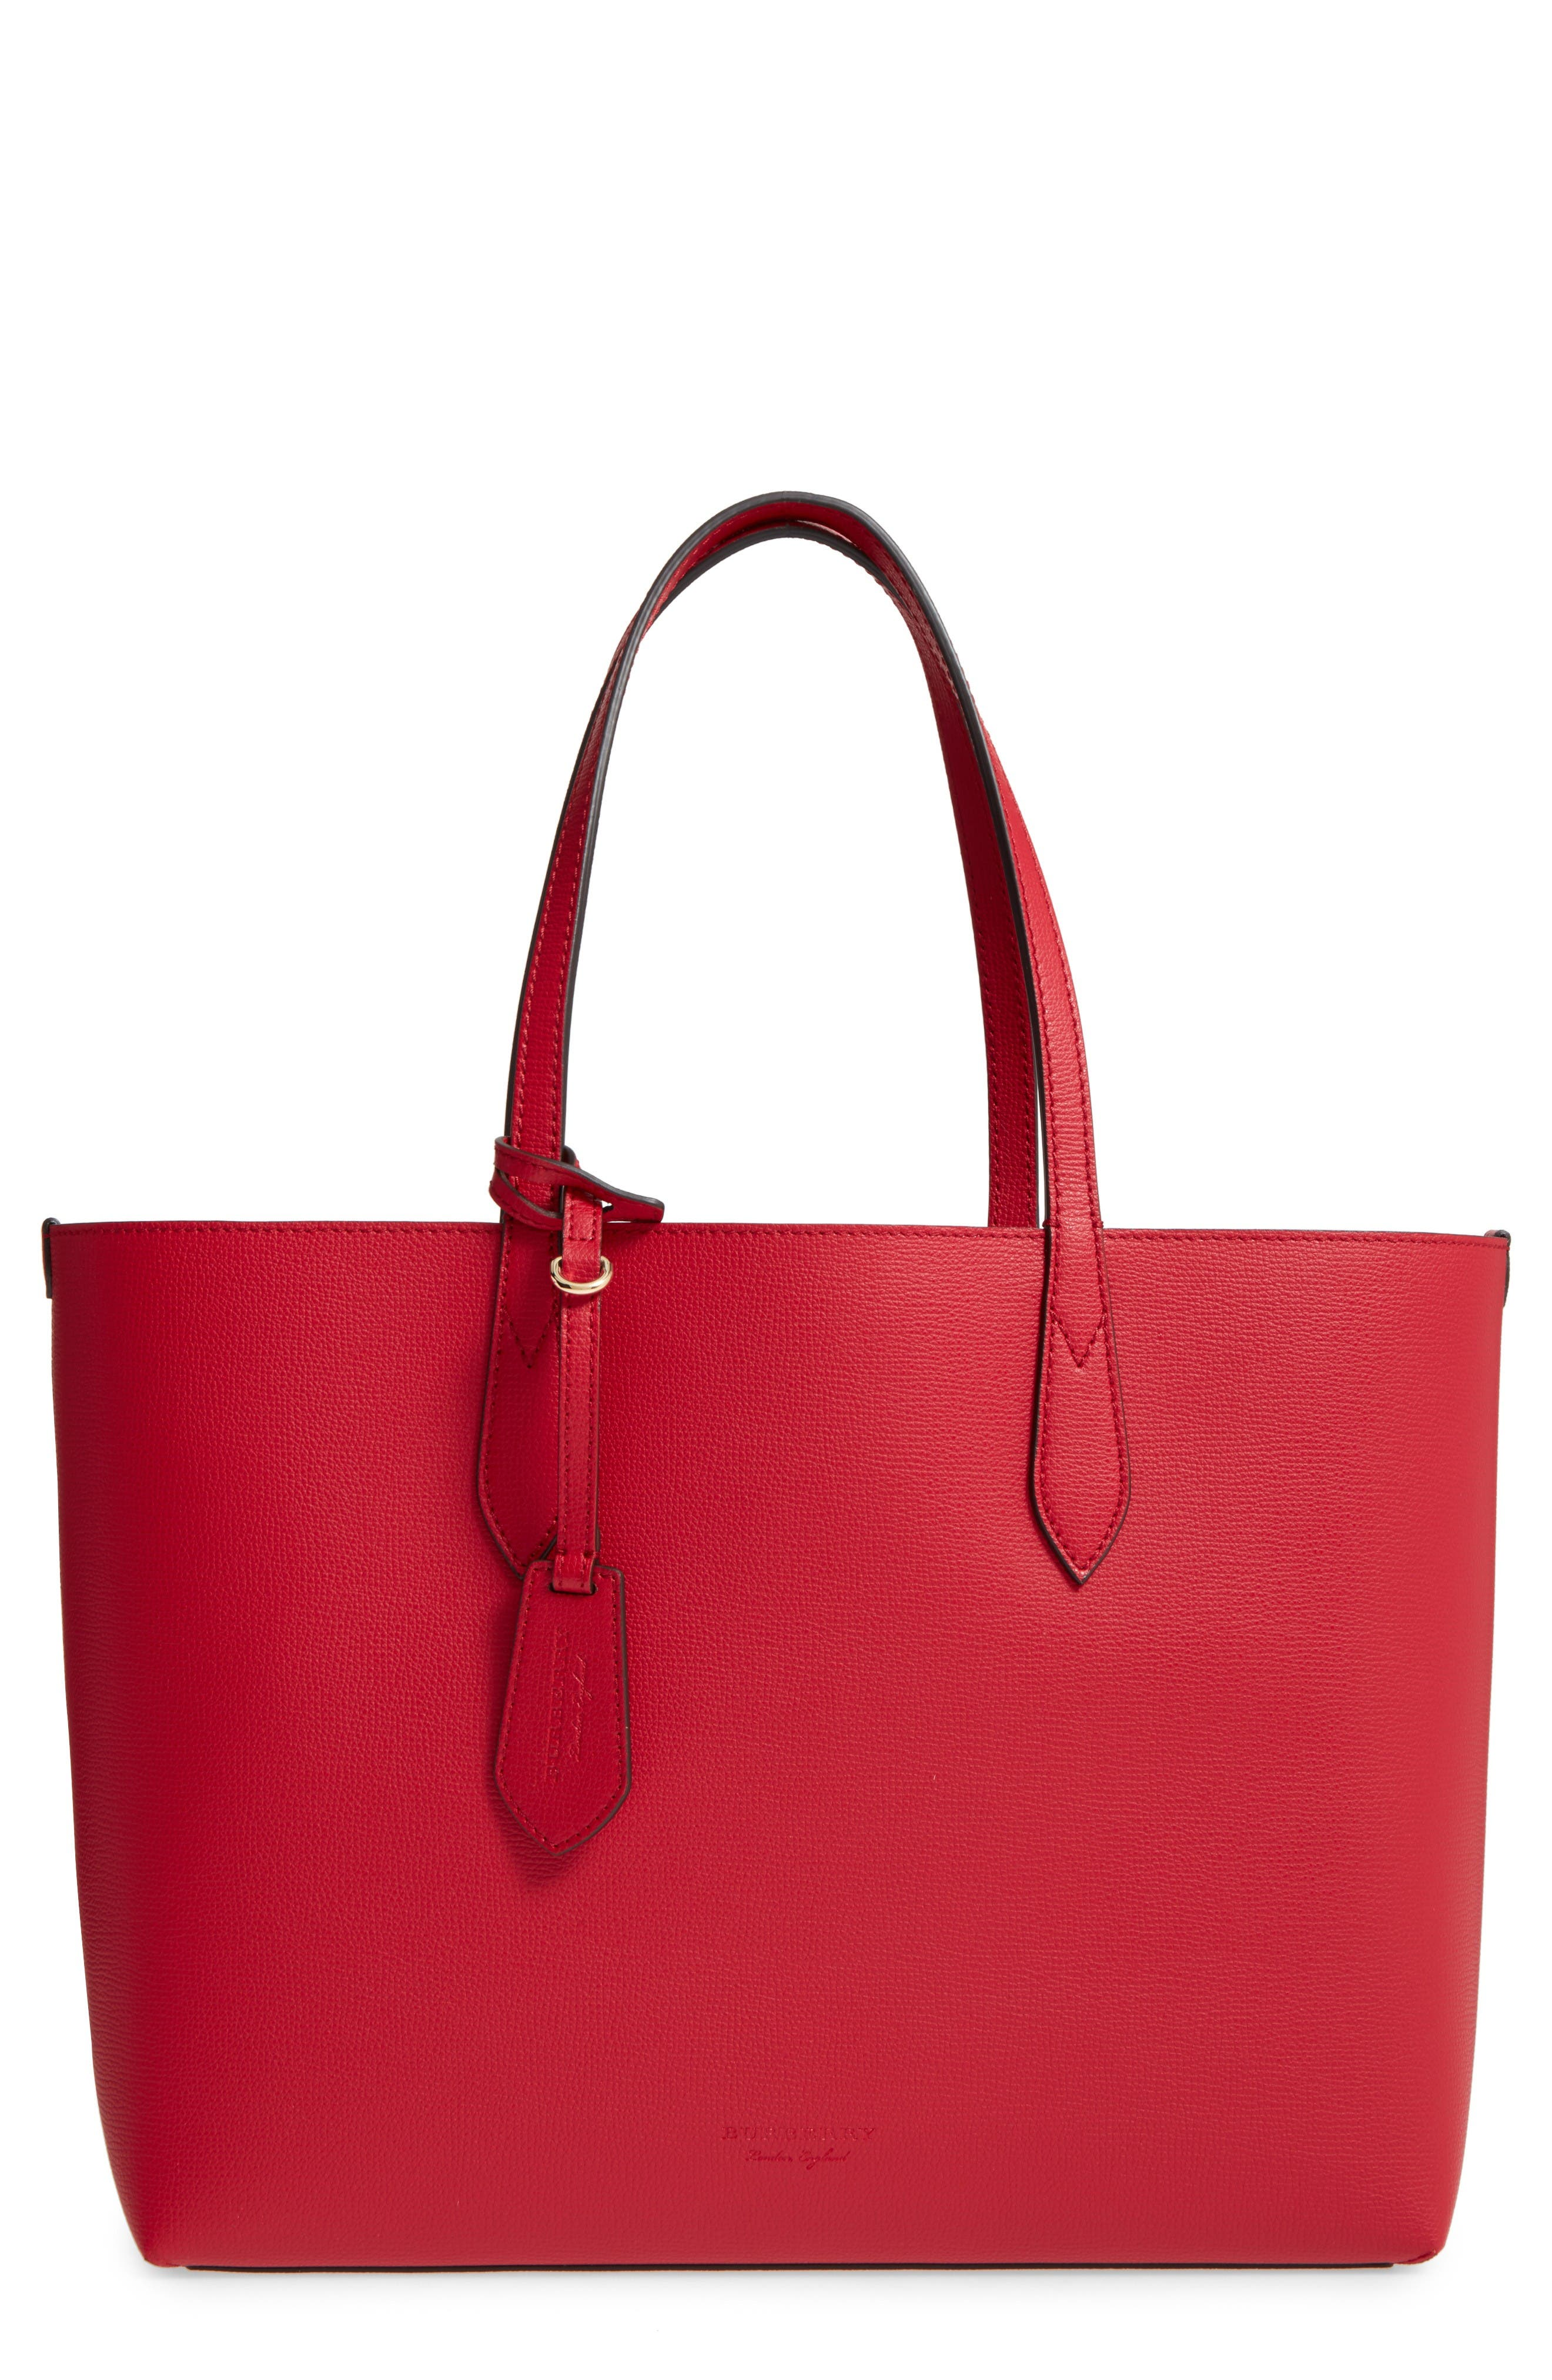 Burberry Reversible Leather Tote